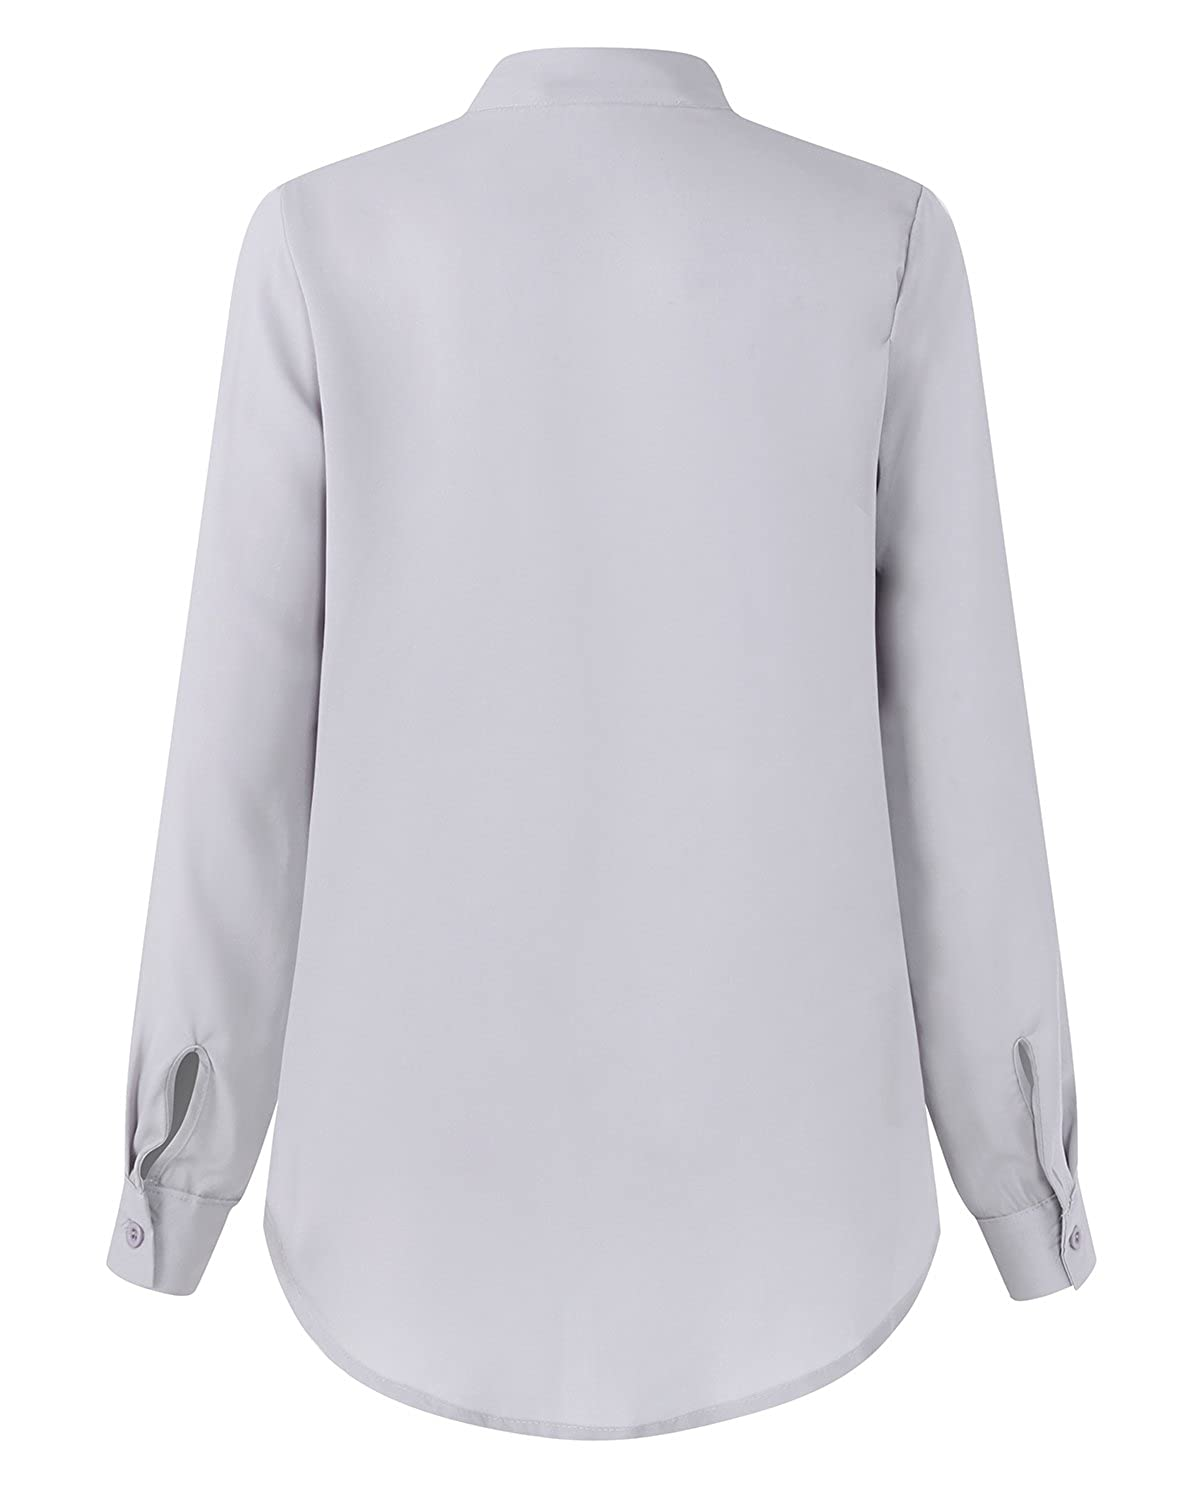 Auxo Women Long Sleeve Blouse Chiffon Shirt Tie Front Tunic Top Casual Solid Color Loose Tops